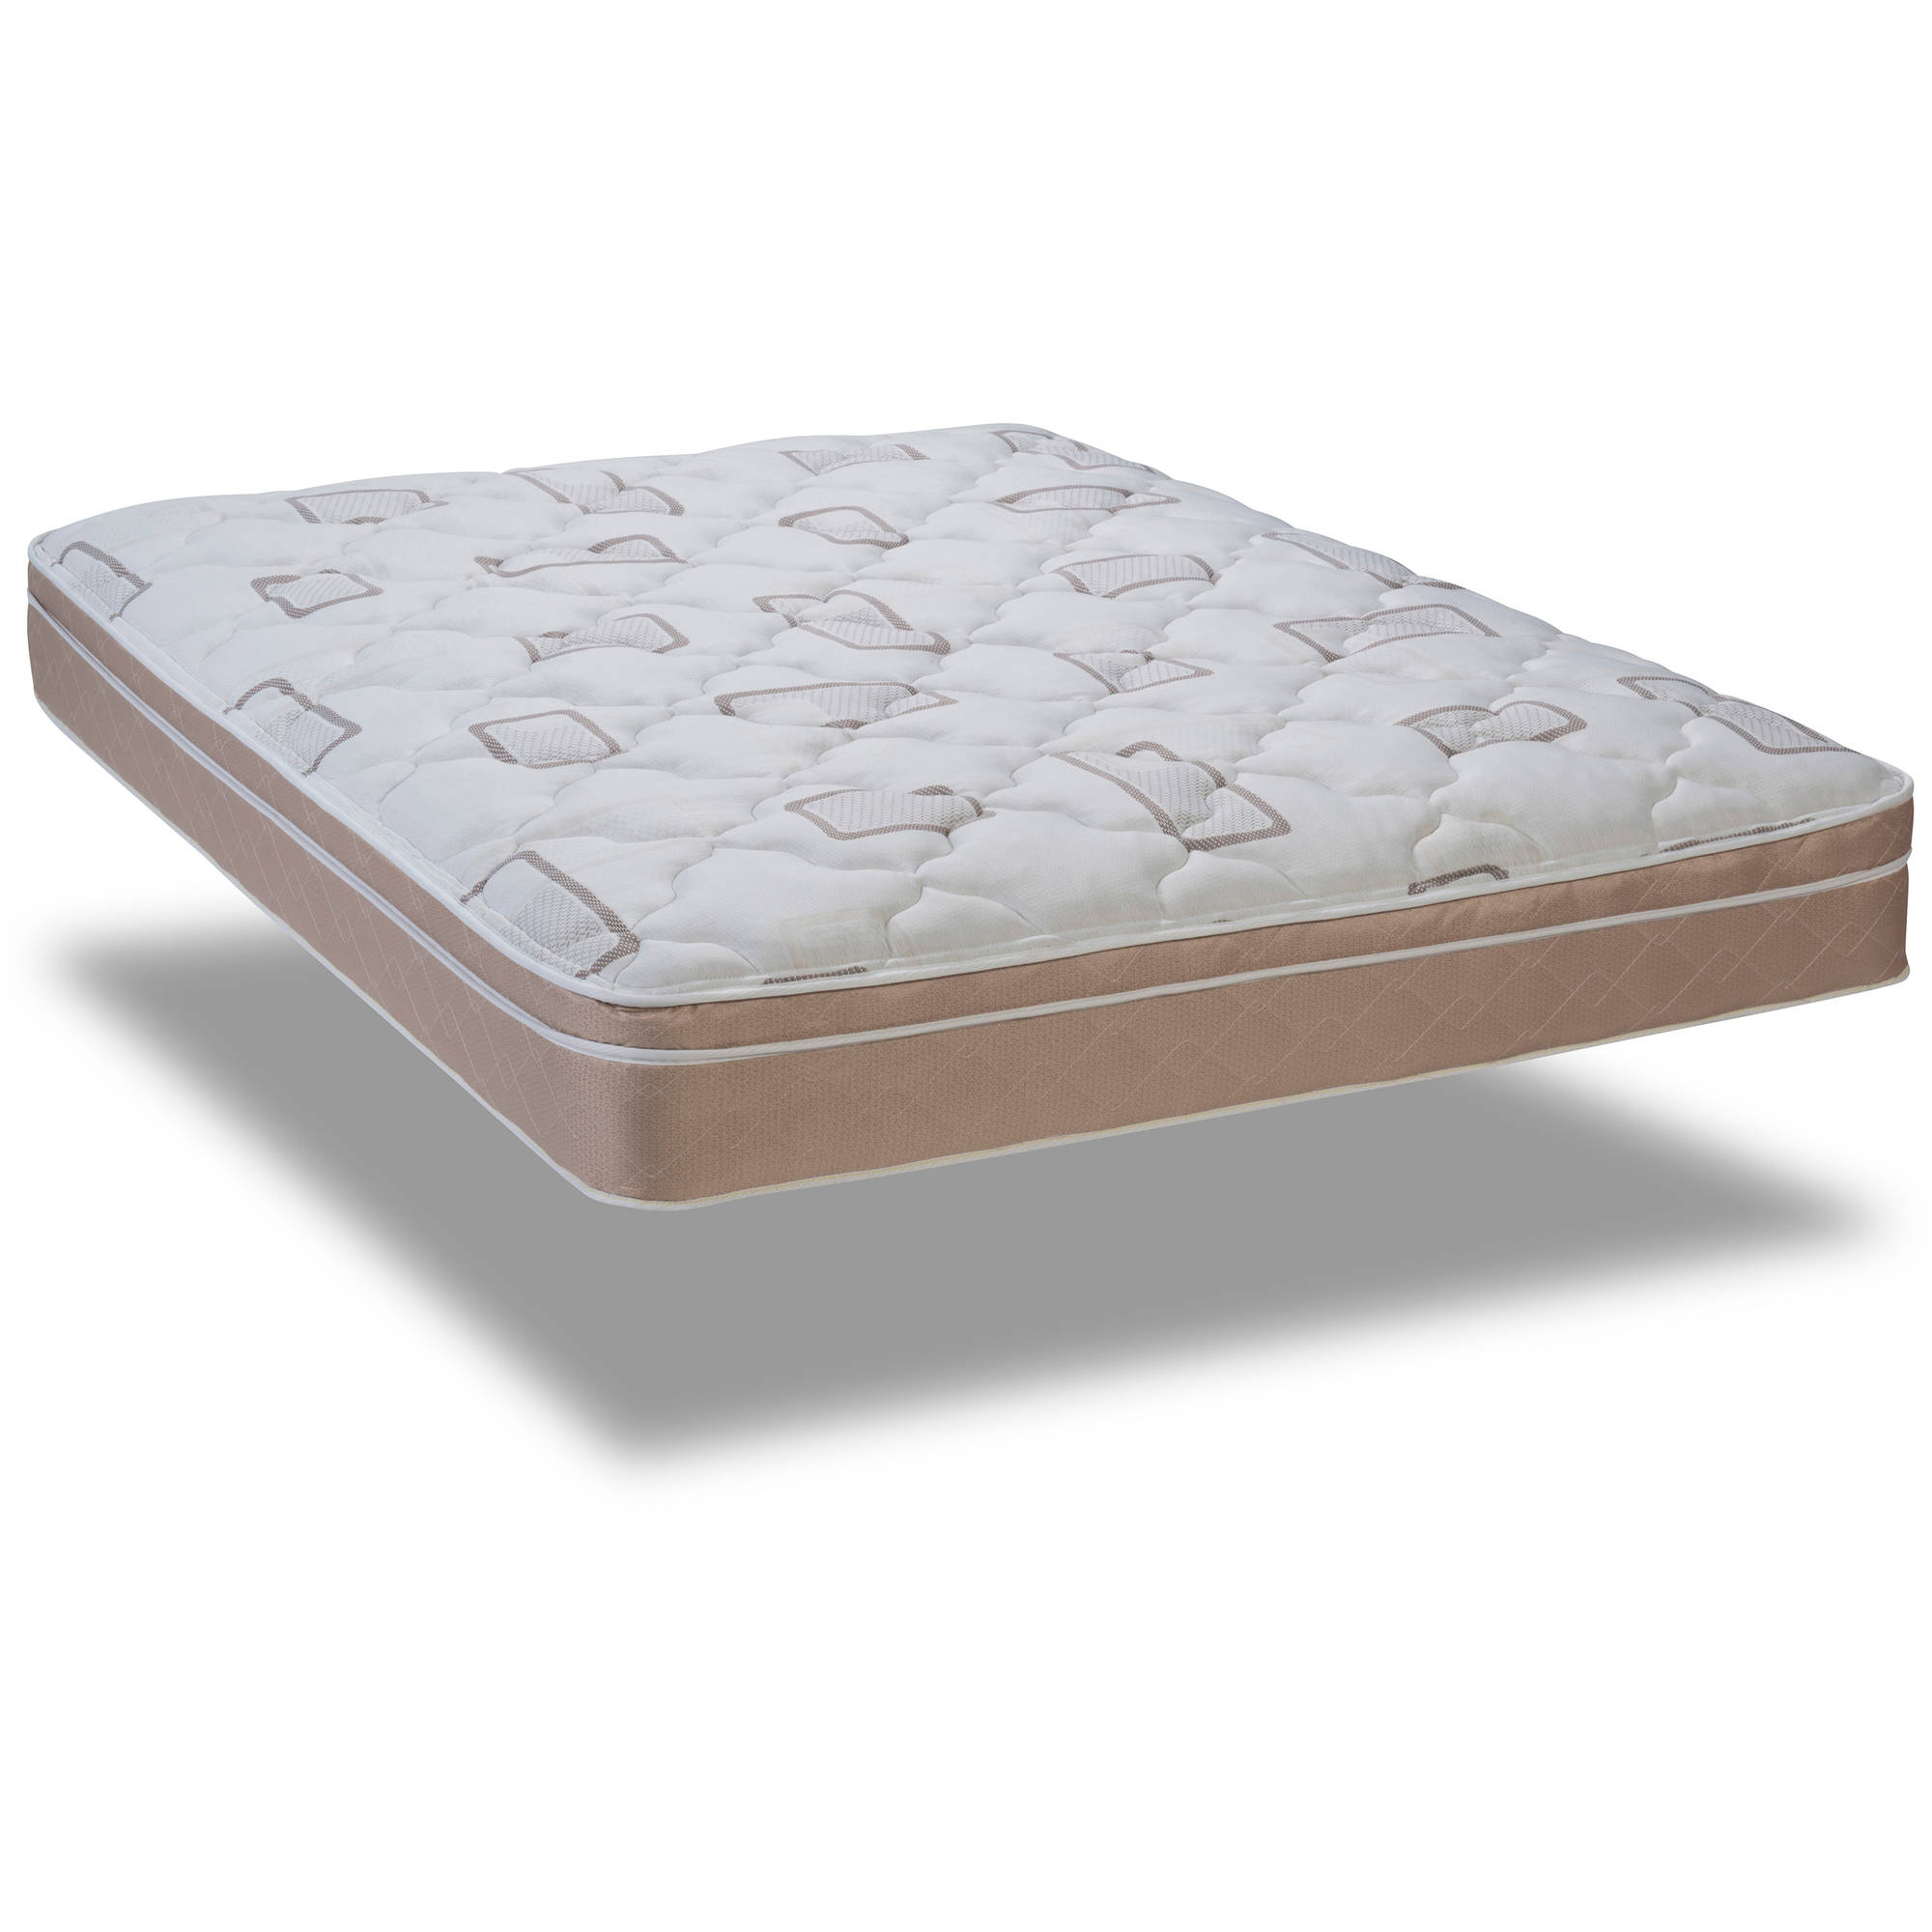 "Wolf Slumber Express Pillow Top Ortho Back Aid 10"" Mattress, Multiple Sizes by Generic"